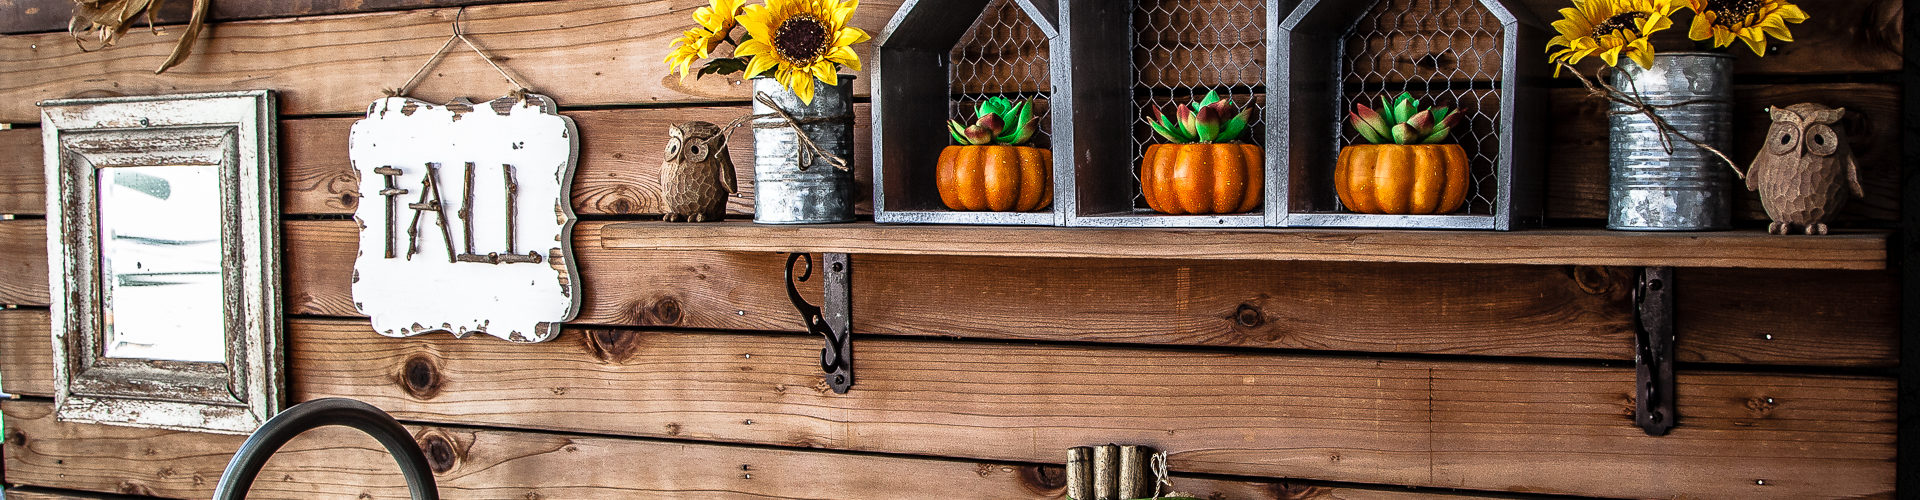 Outdoor Fall Decorating Ideas - outdoor sink decor